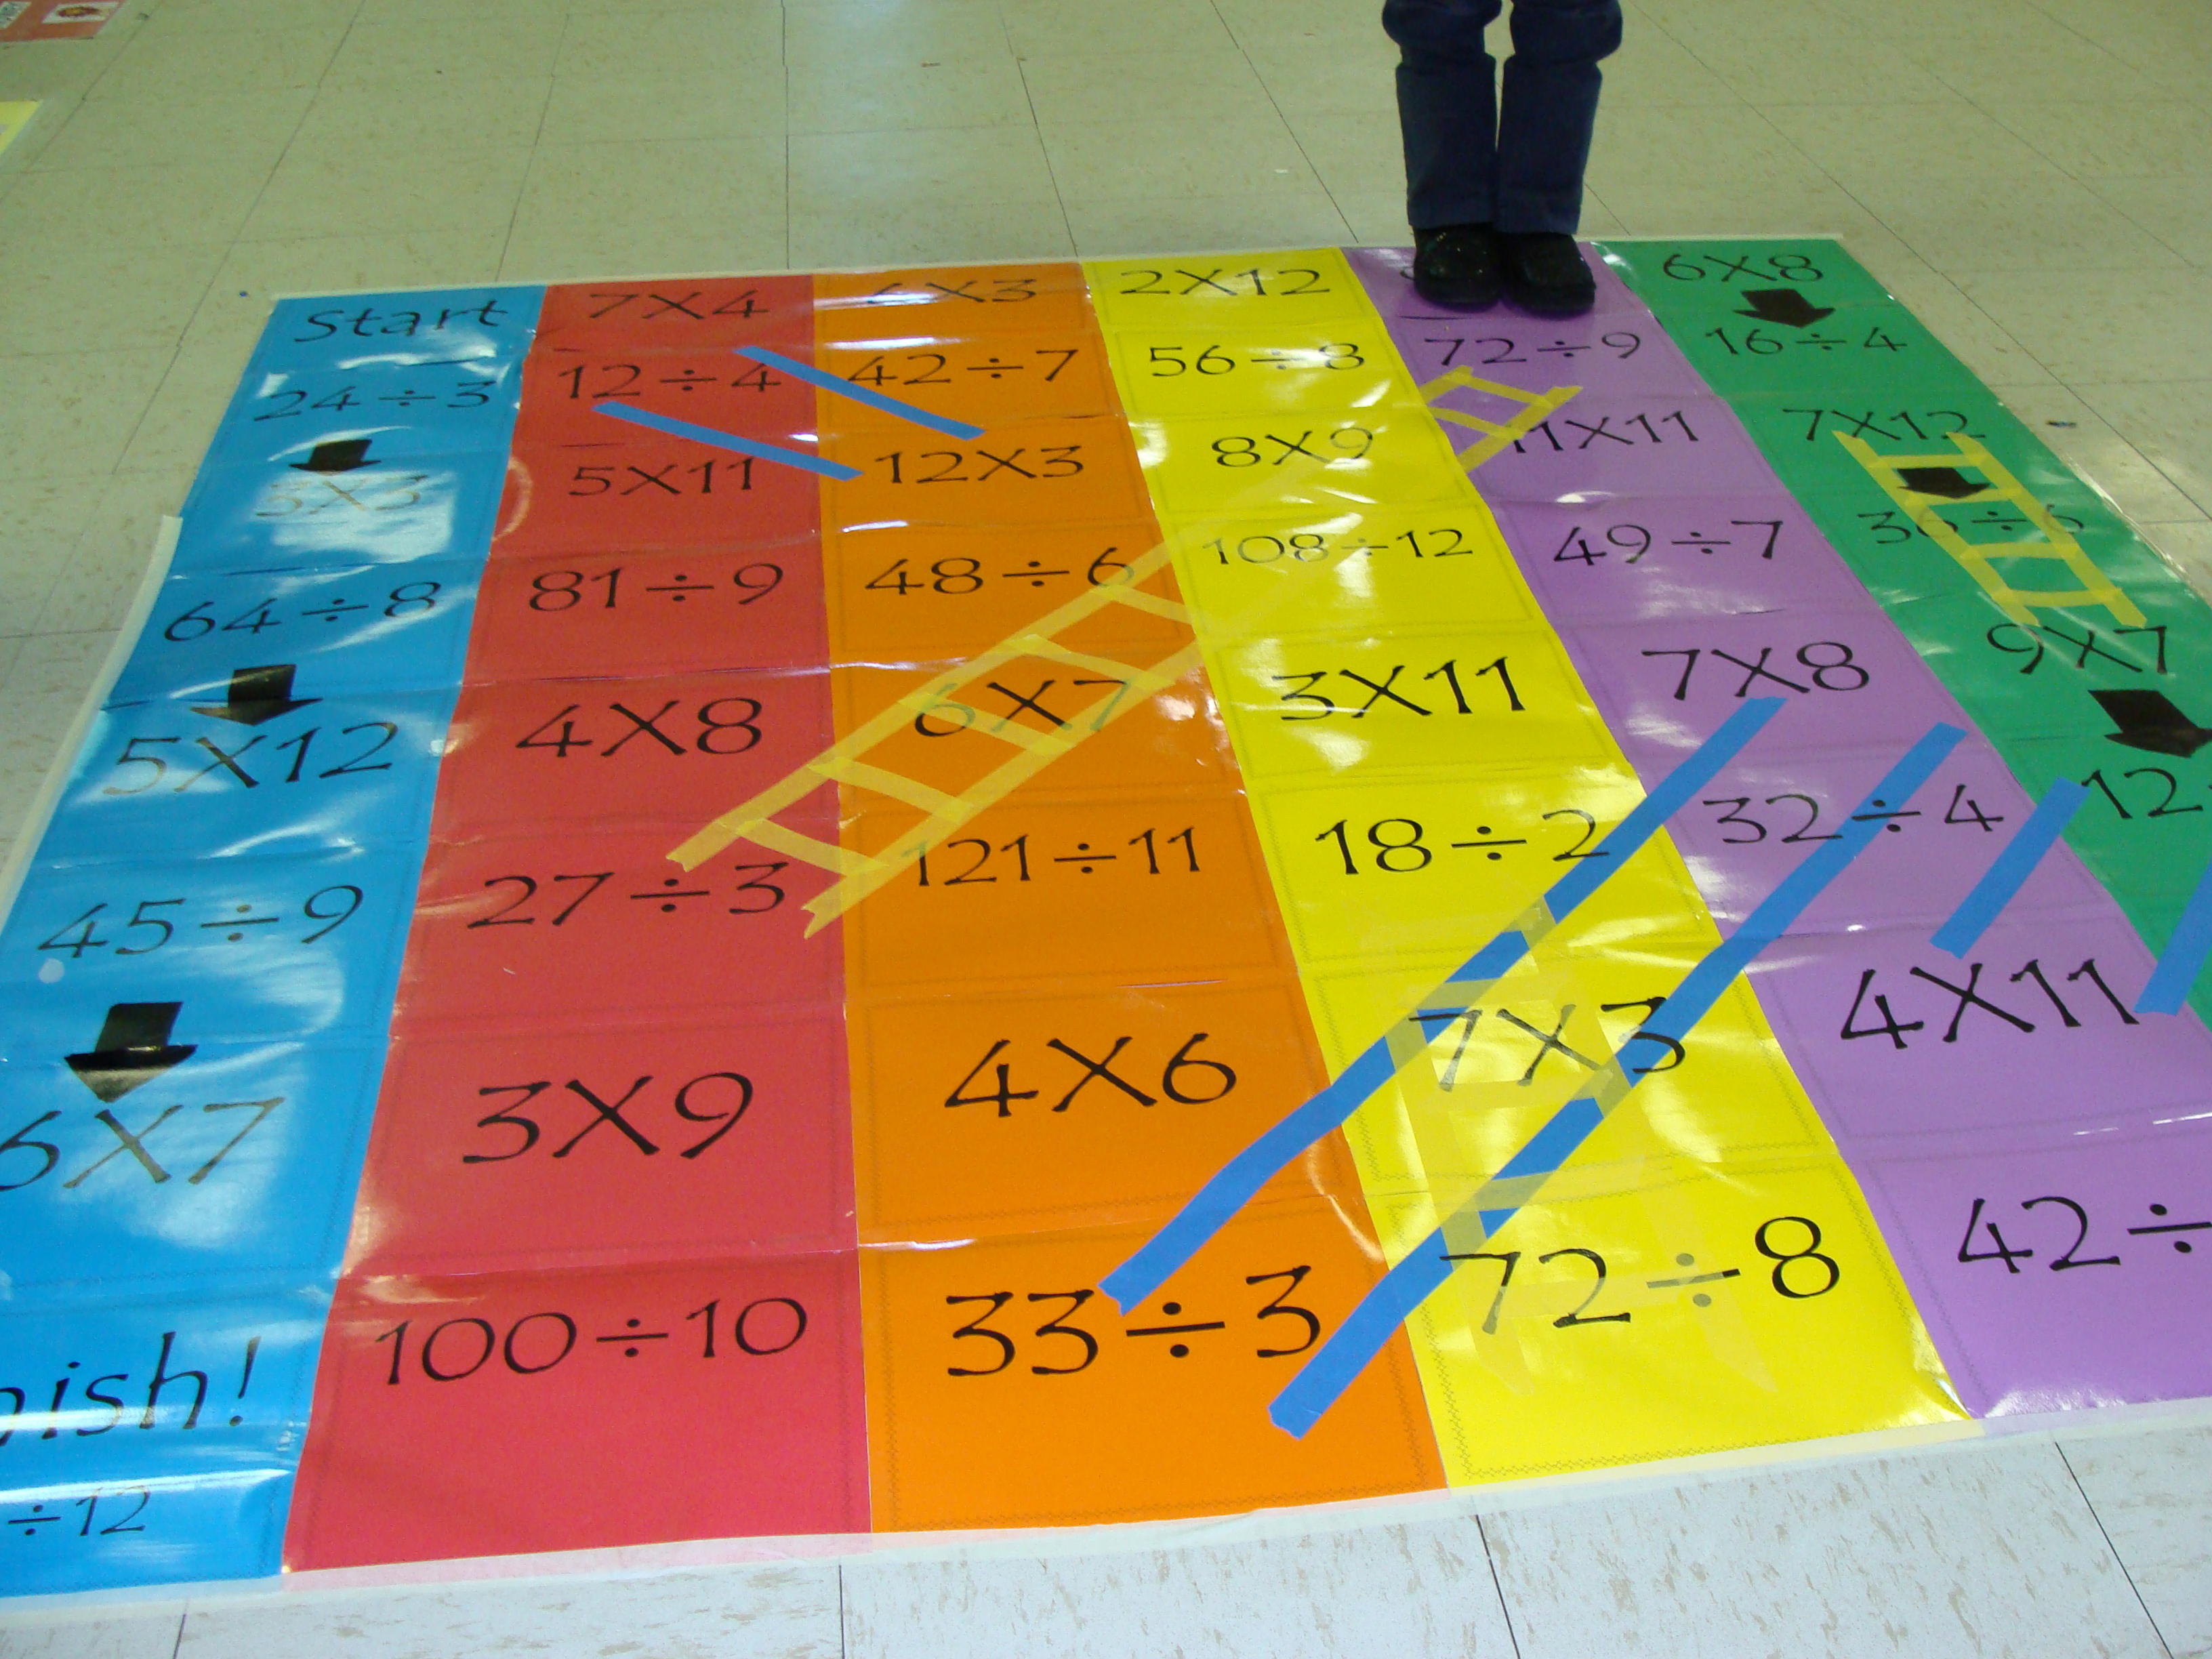 Giant chutes and ladders game board ms o 39 donnell can for Chutes and ladders board game template